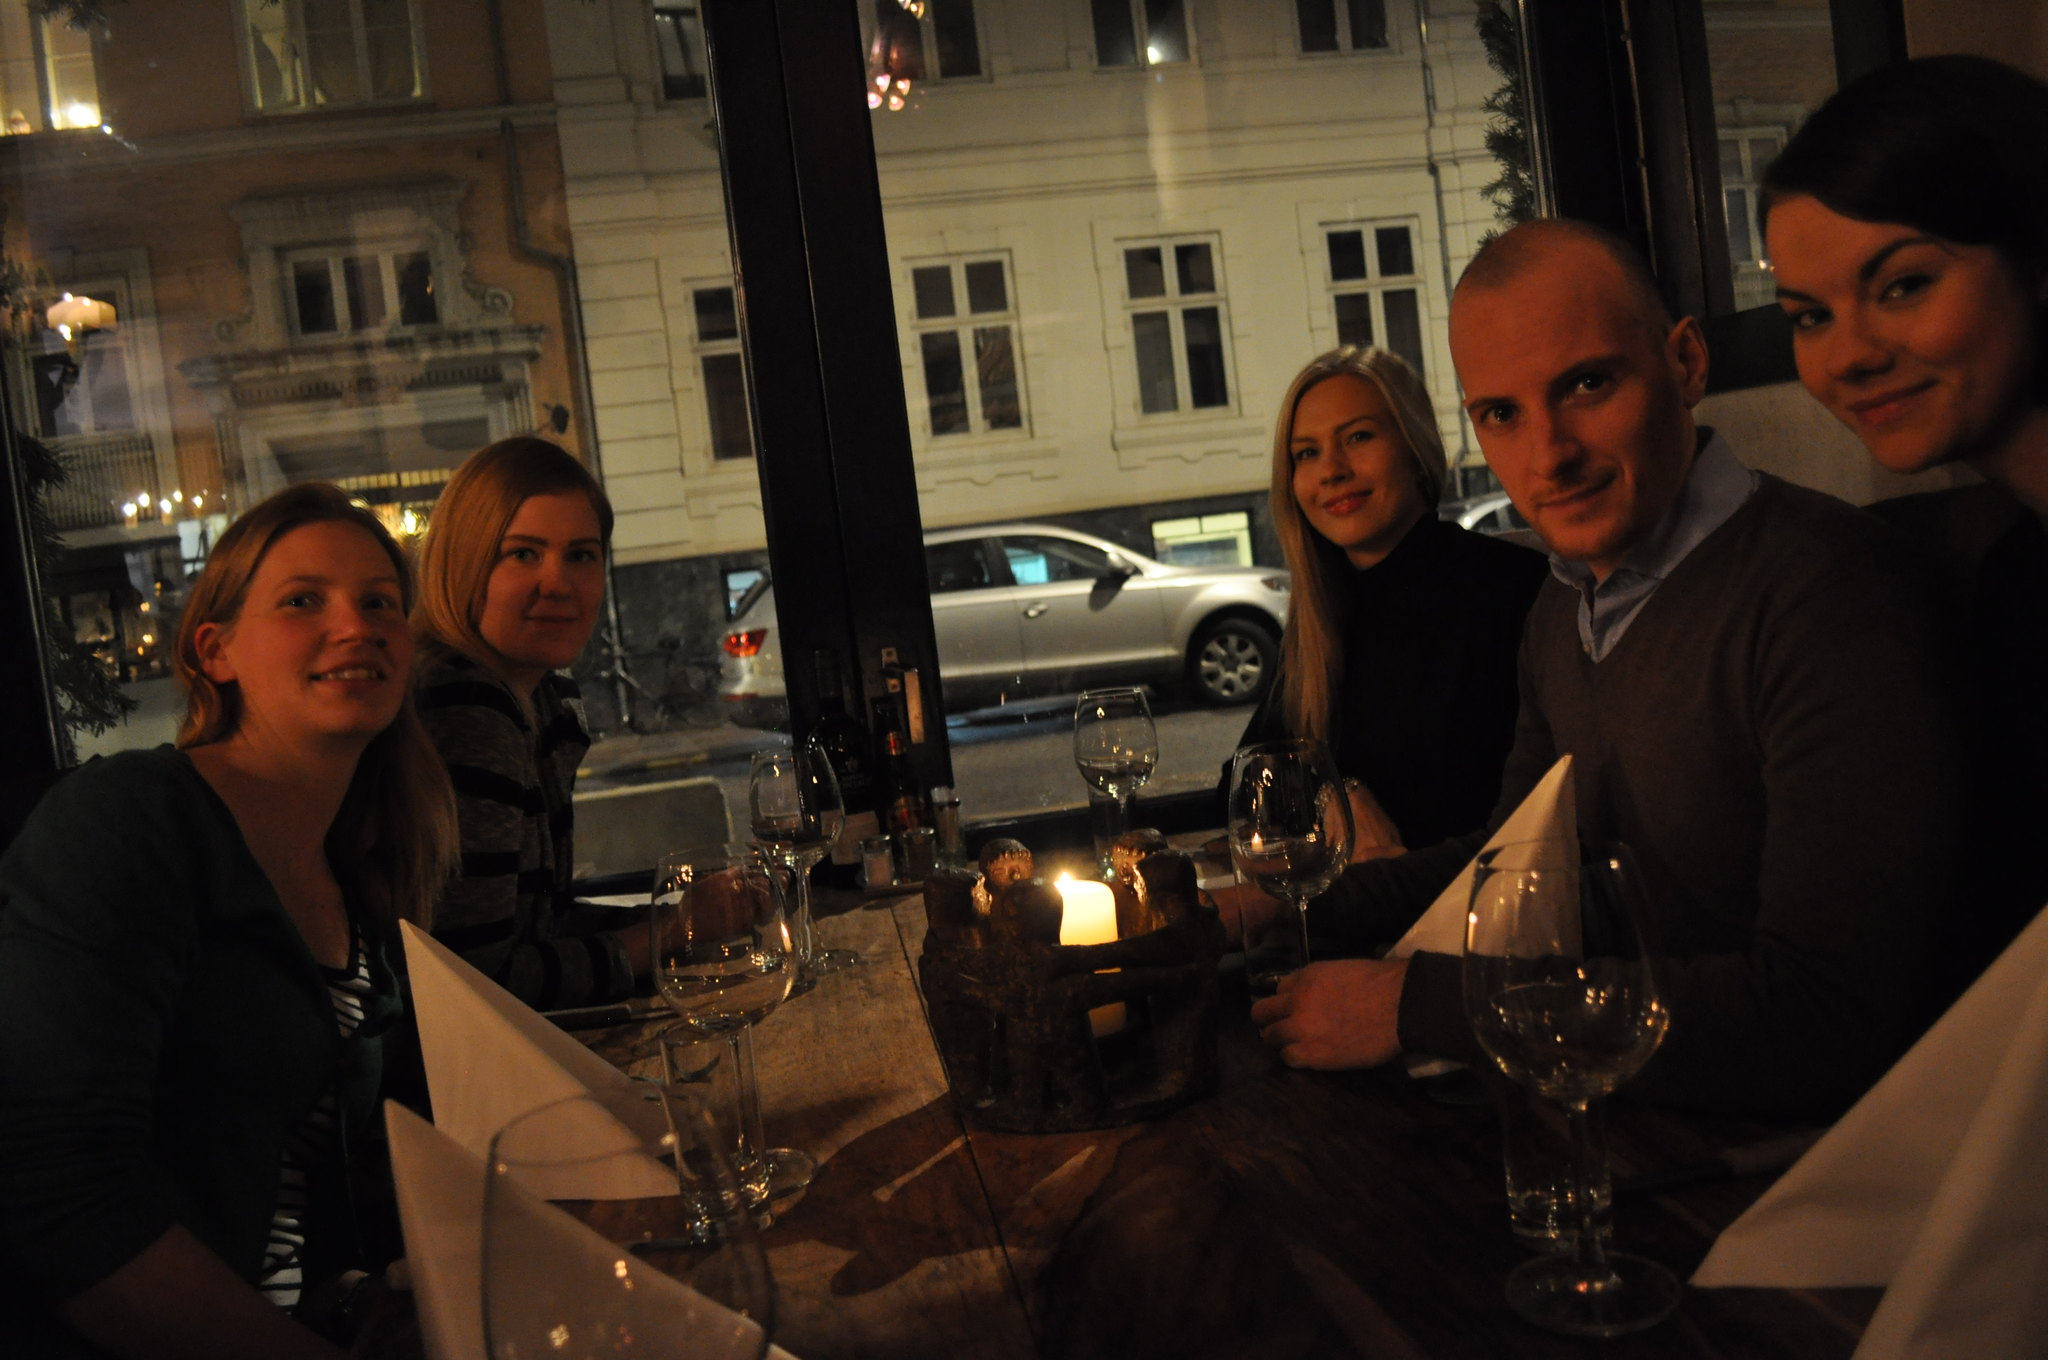 Copenhagen Restaurant Friendship